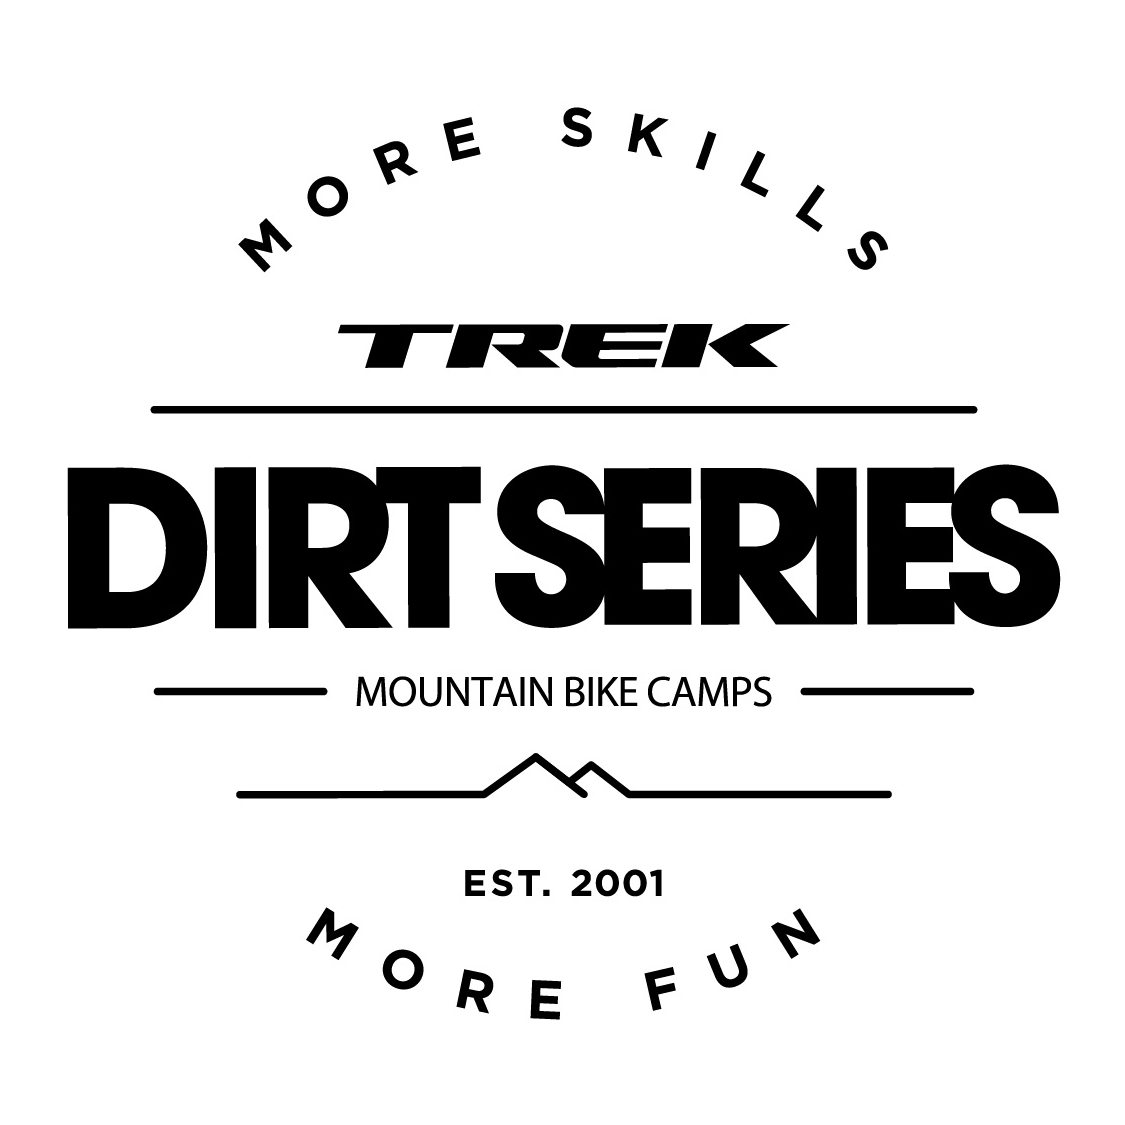 Dirt Series Mountain Bike Camp - Calgary, AB